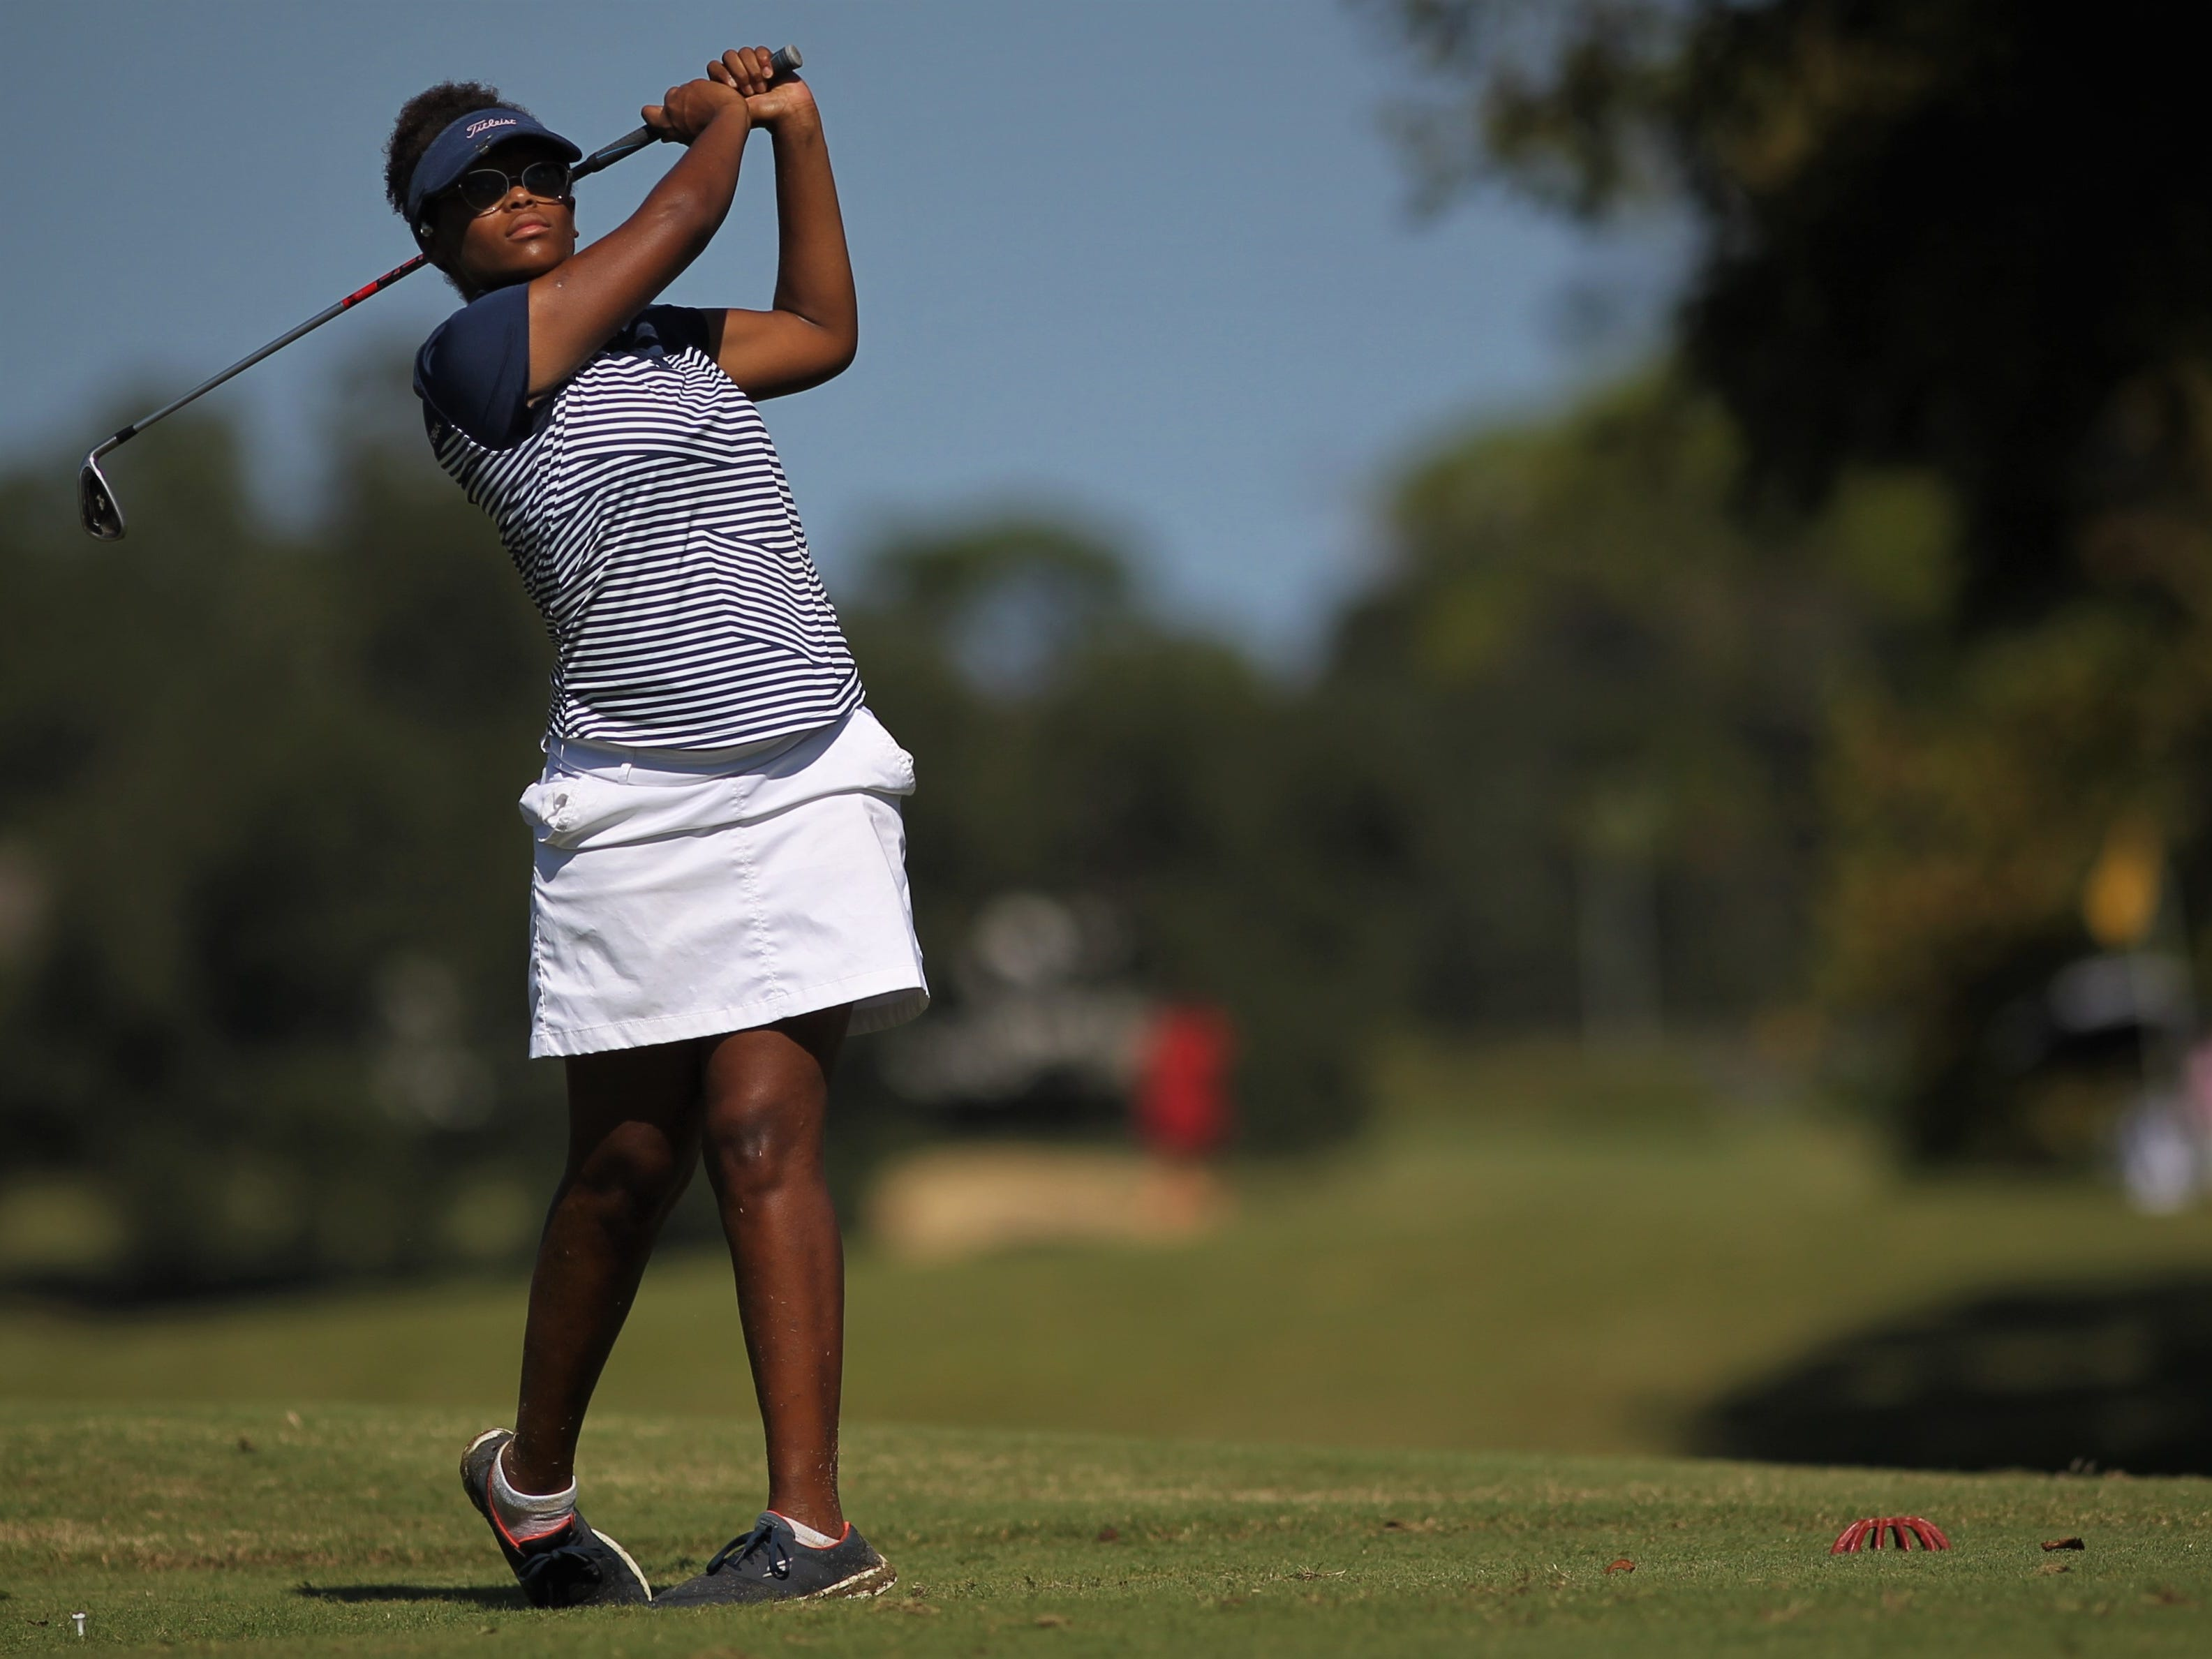 Maclay sophomore Annika Dean watches a tee shot during the girls golf Panhandle Invitational at Killearn Country Club, Oct. 4, 2018.